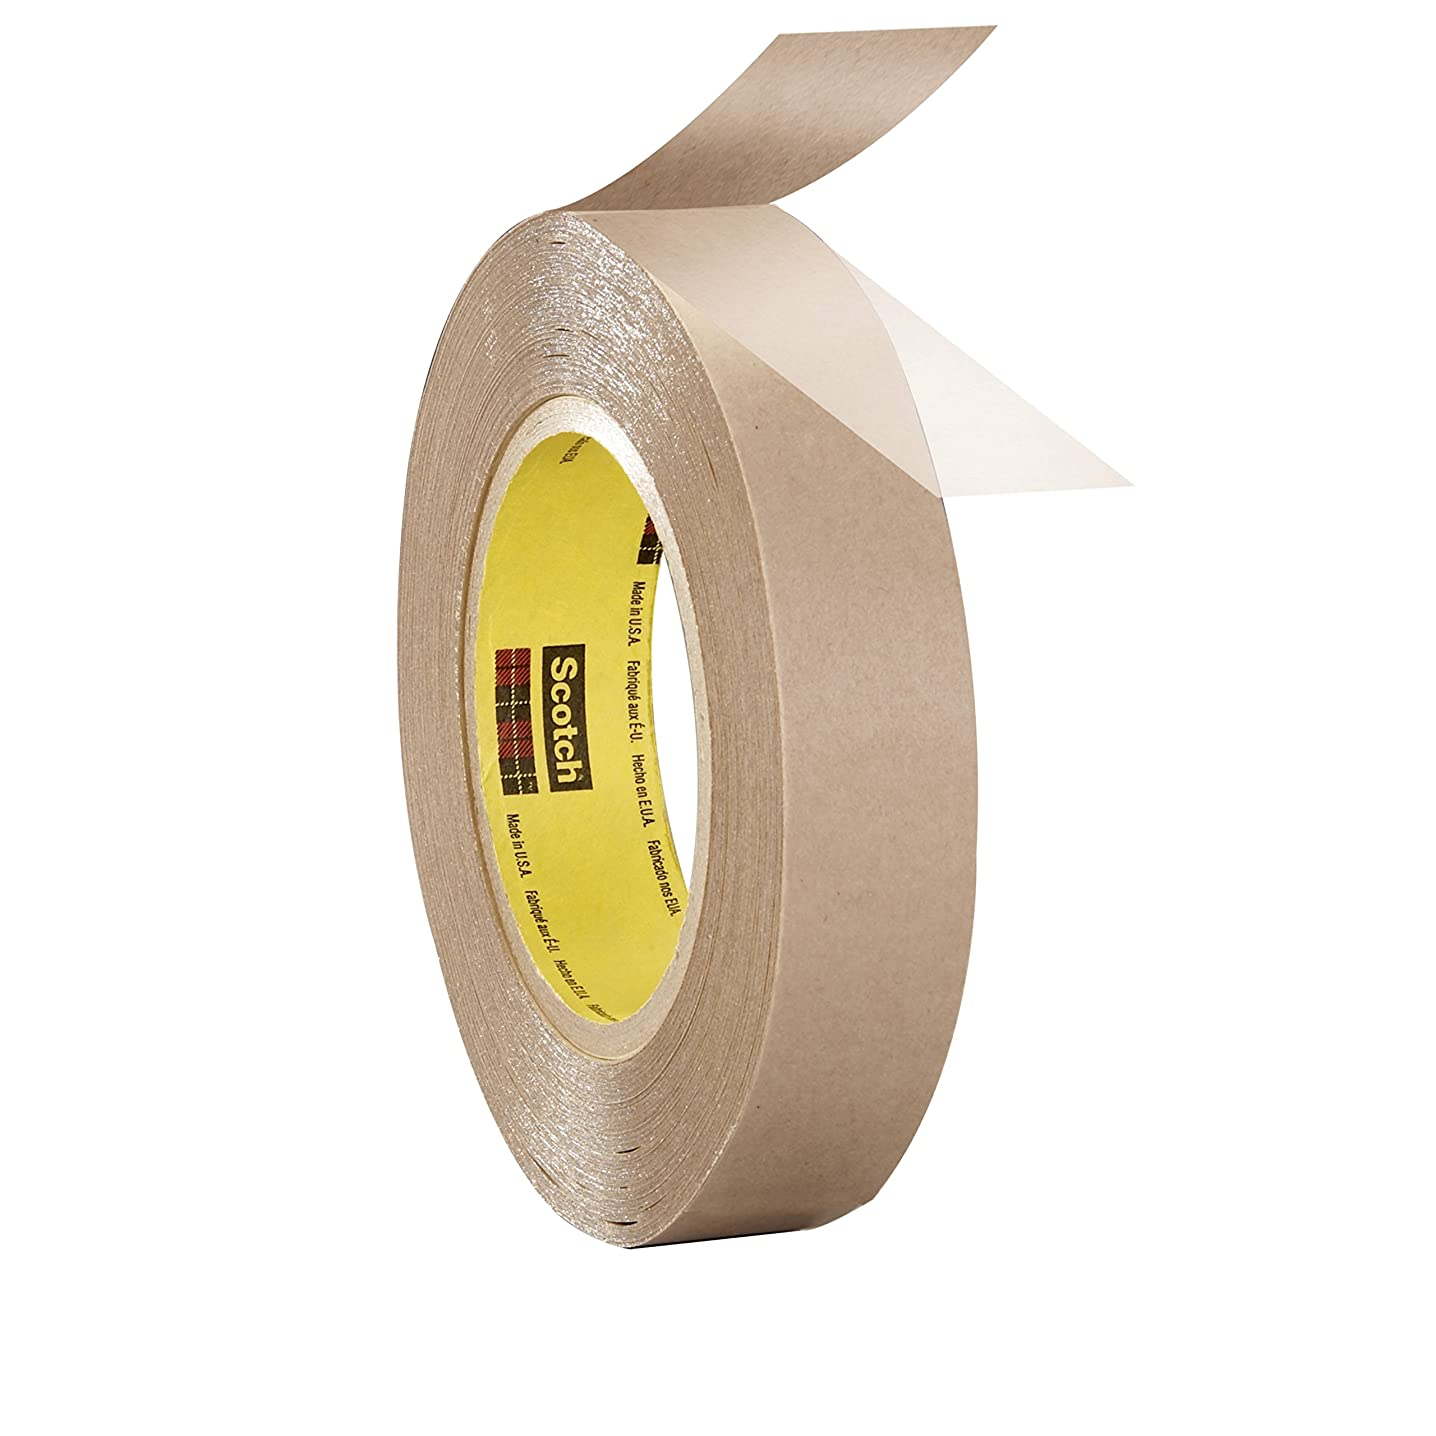 3M 31711 Double Coated Tape 9832, 1.5